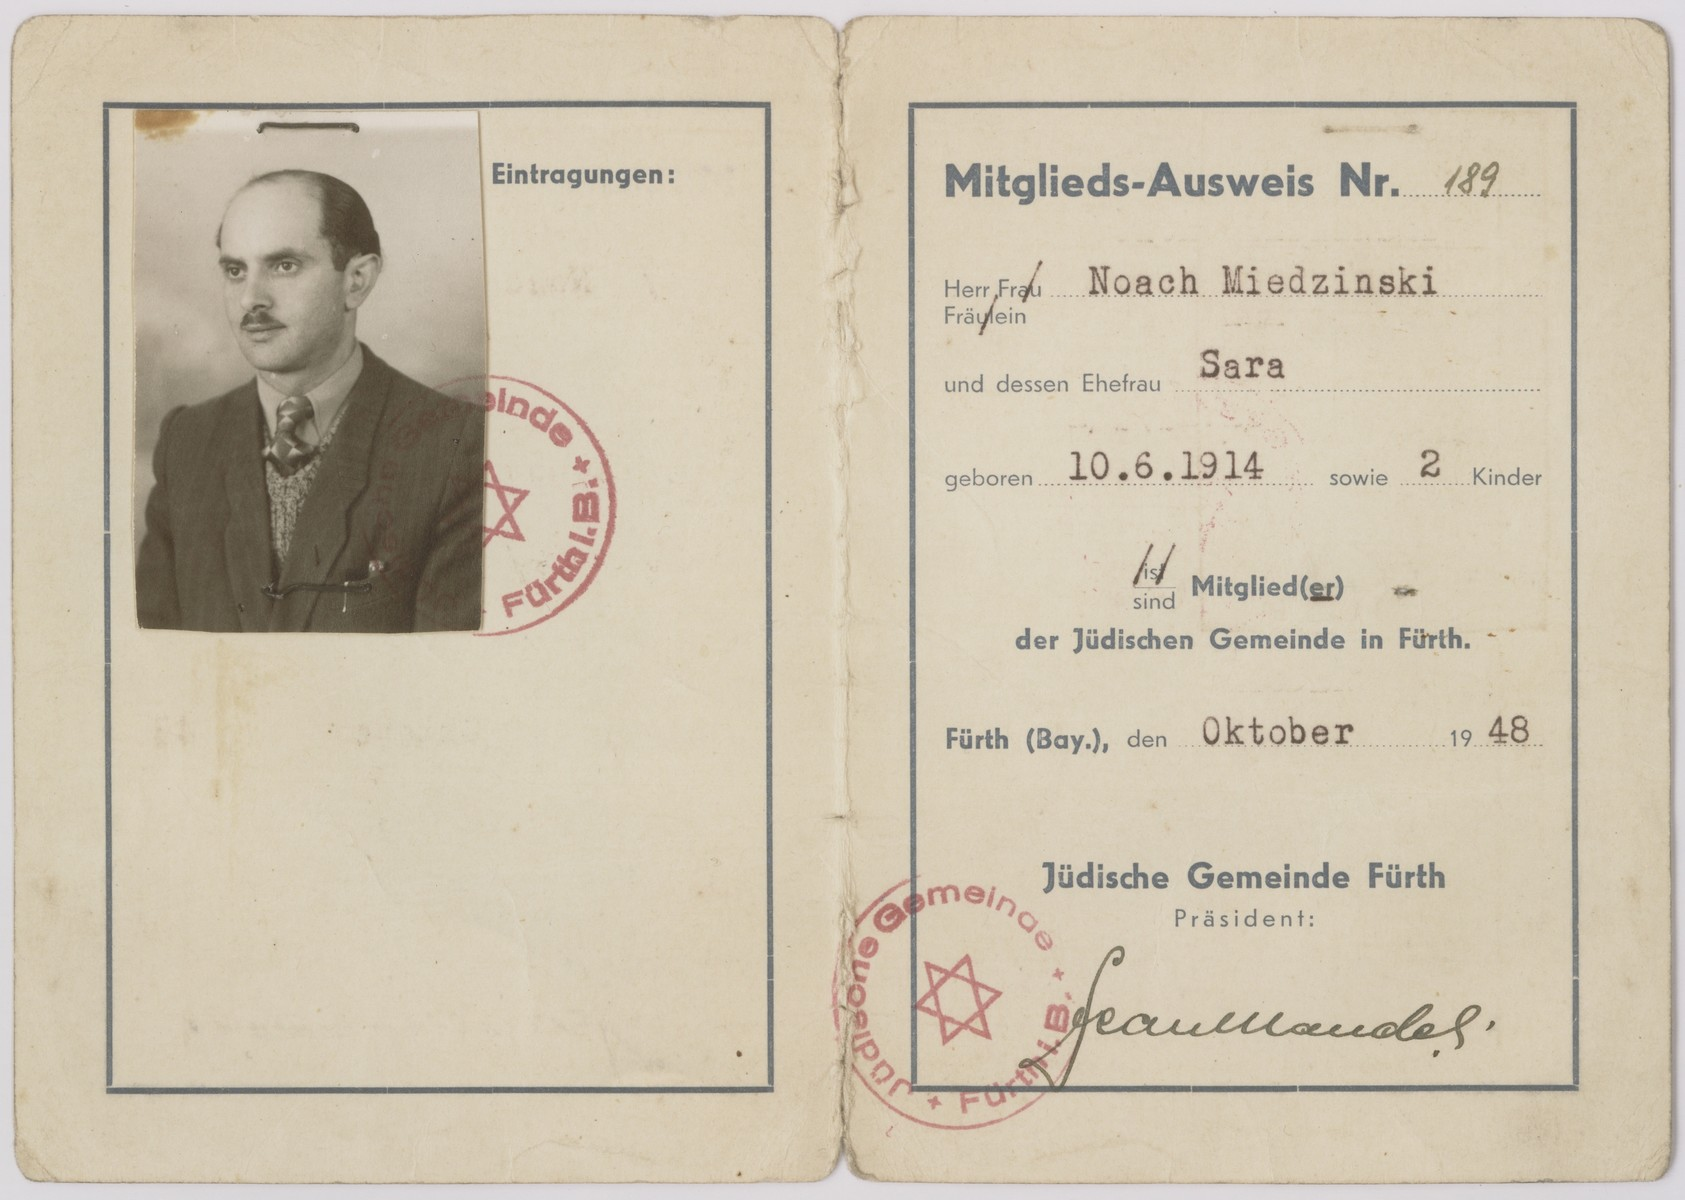 Membership card in the Jewish community in Fuerth issued to Noach Miedzinski, his wife and two children.